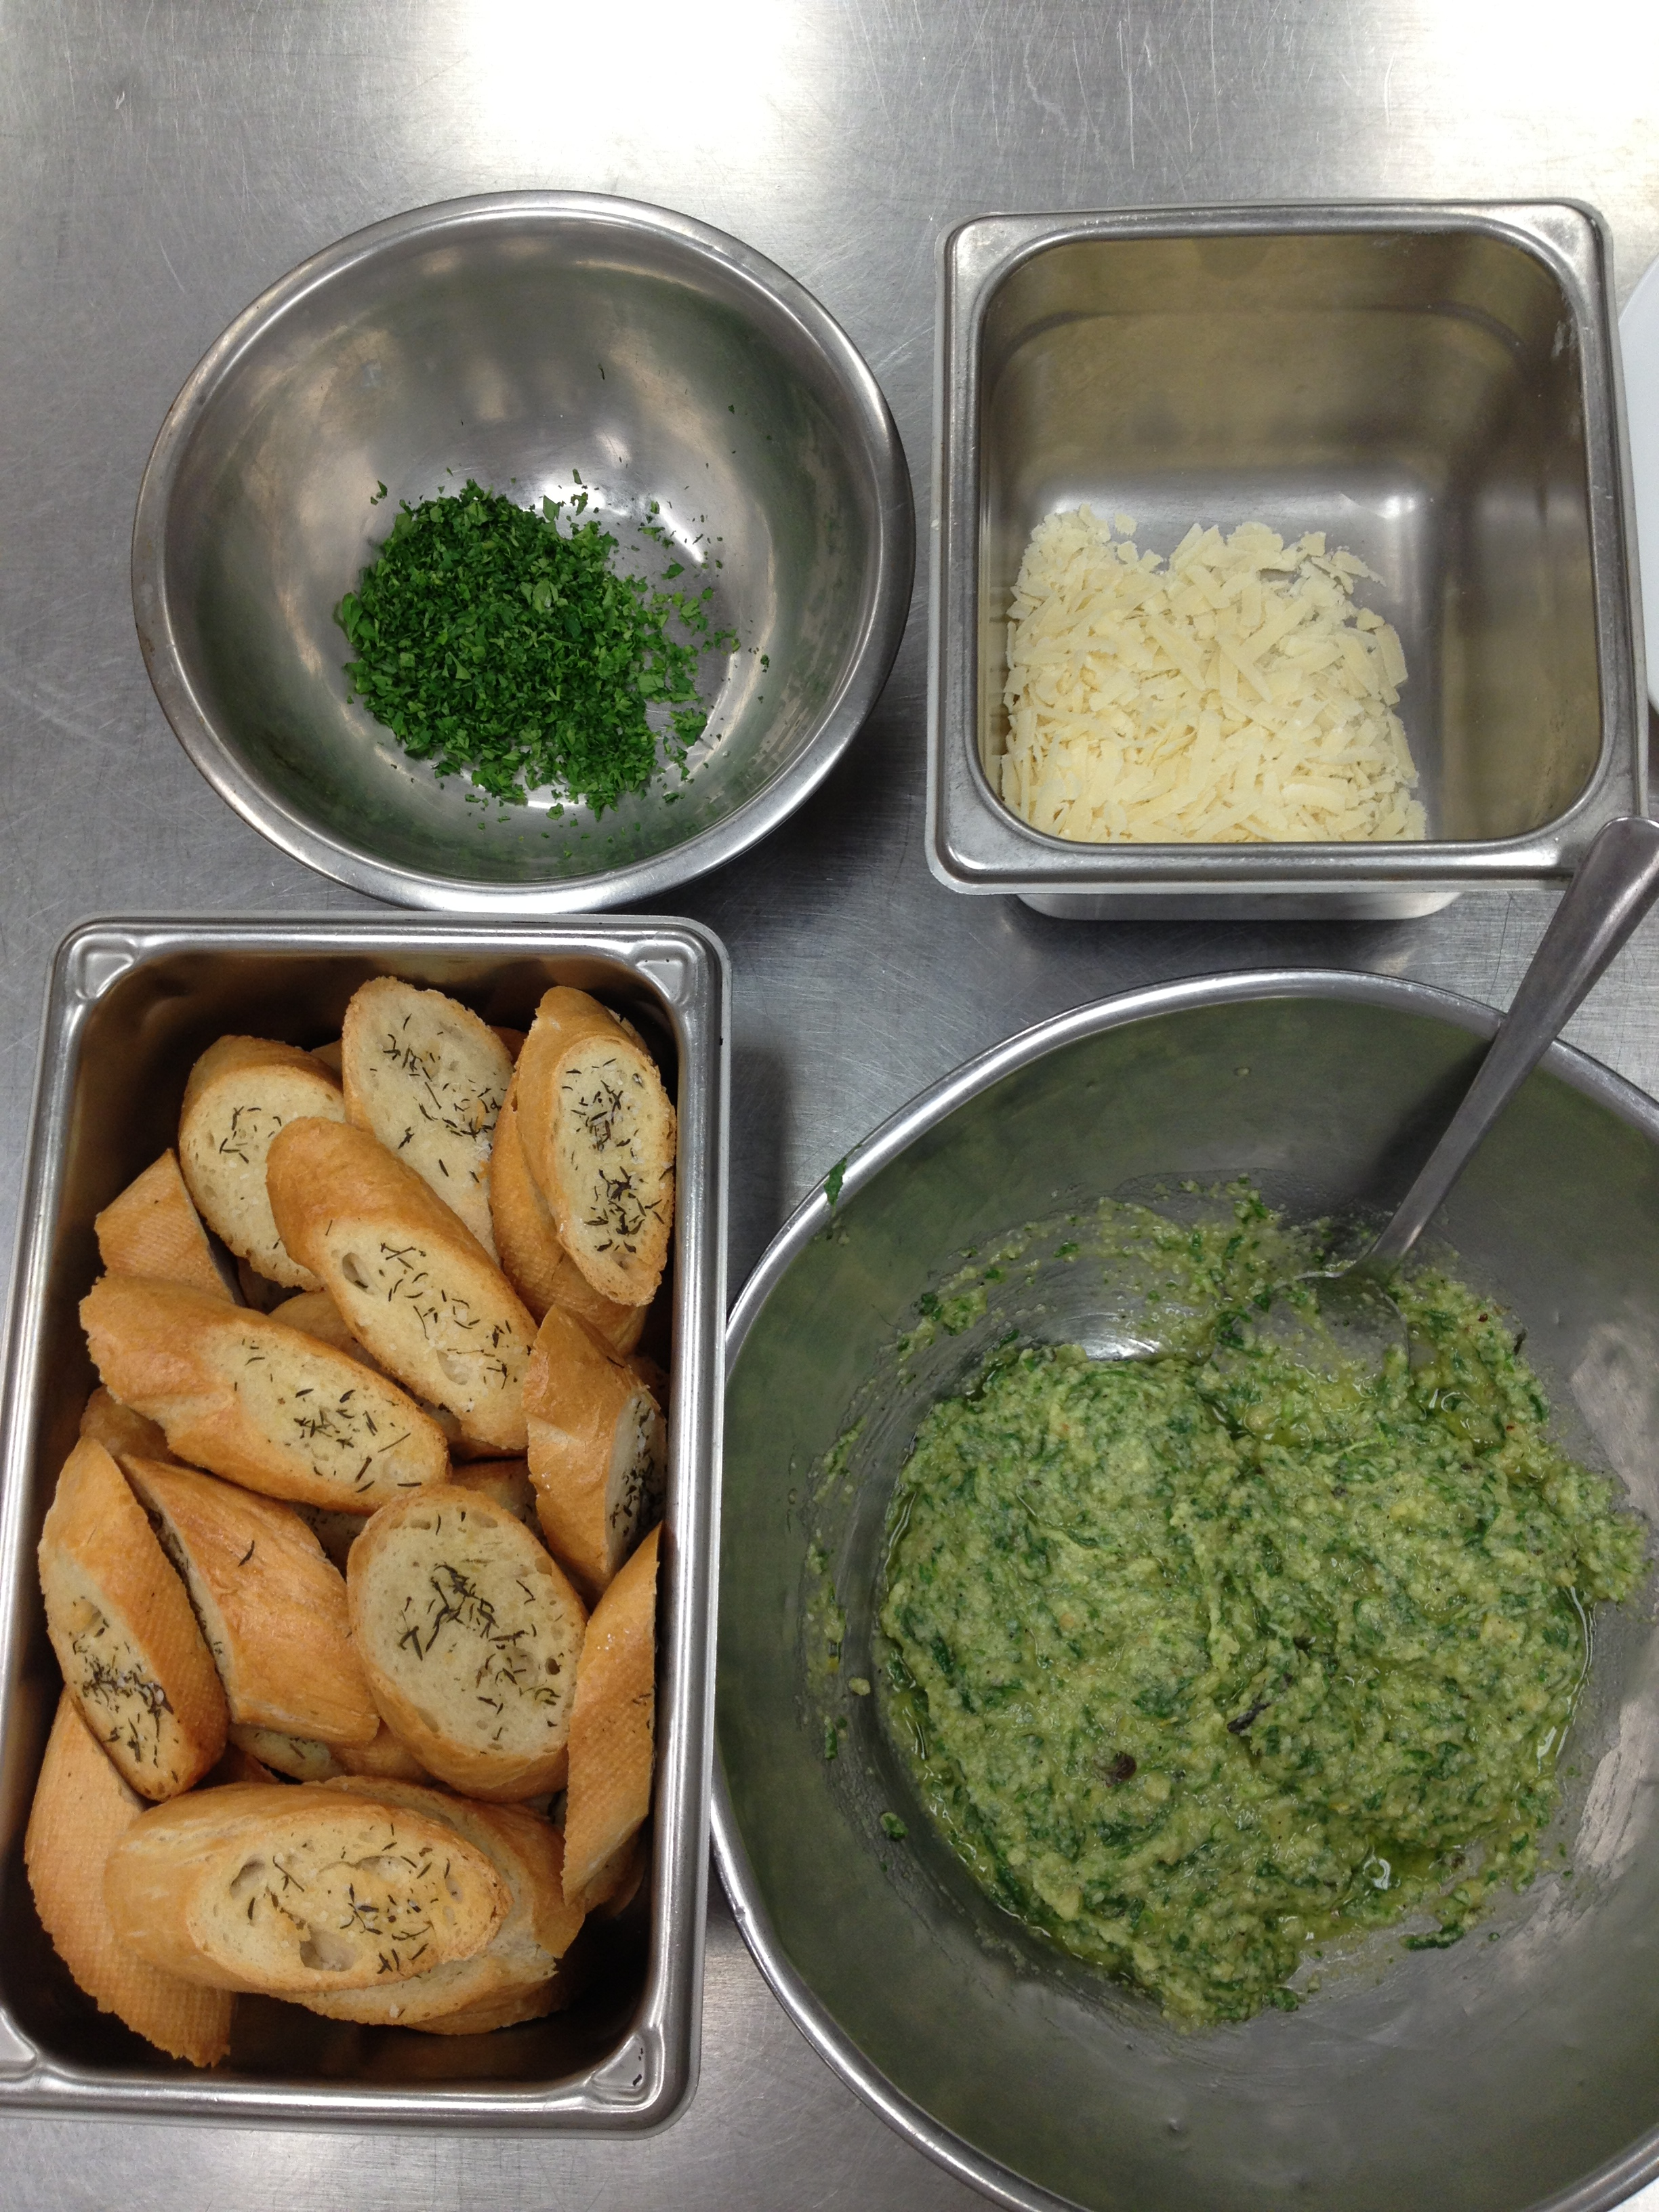 Pesto, Parmesan, Parsley, and Bread